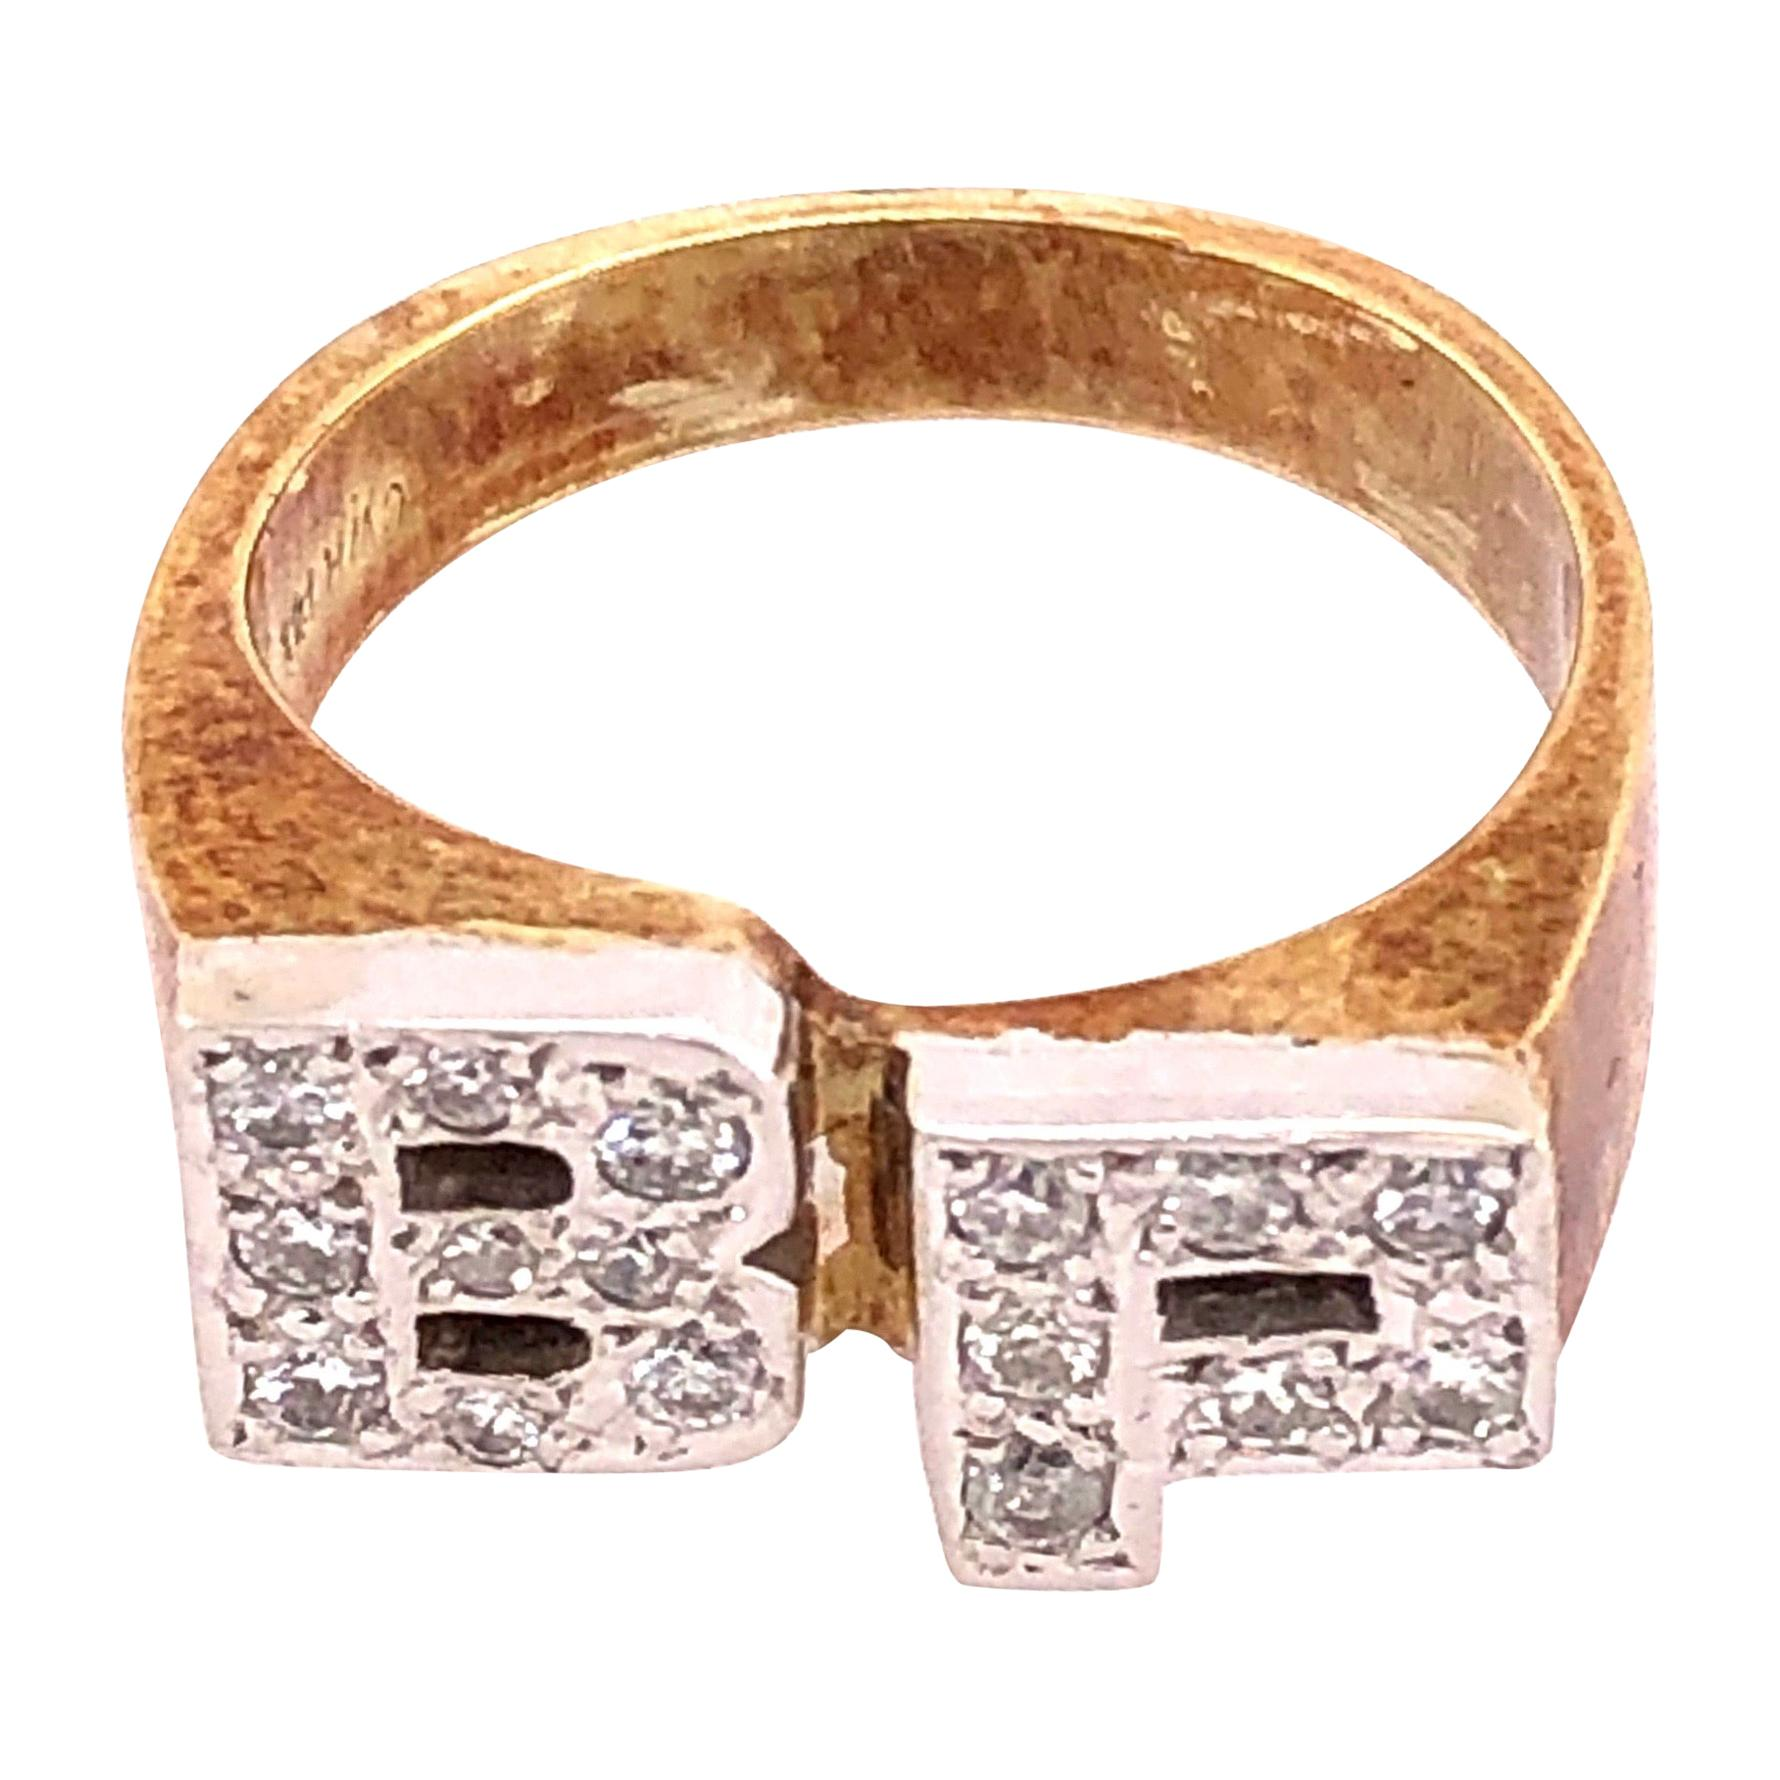 14 Karat White and Yellow Gold and Diamond BP Initial Ring